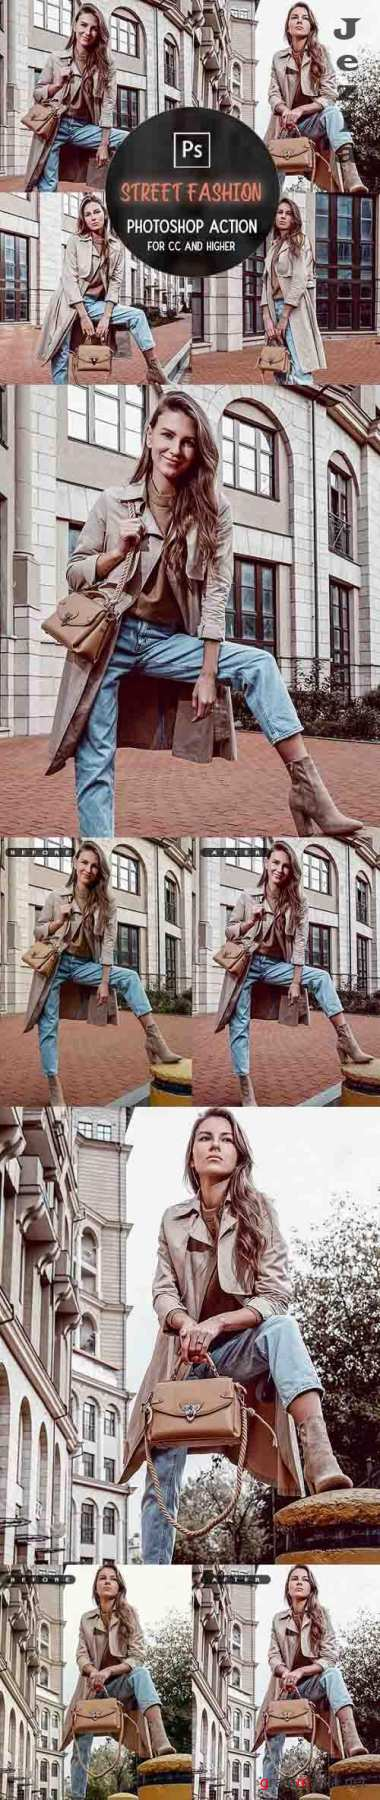 GraphicRiver - Street Fashion - Photoshop Action 29950944